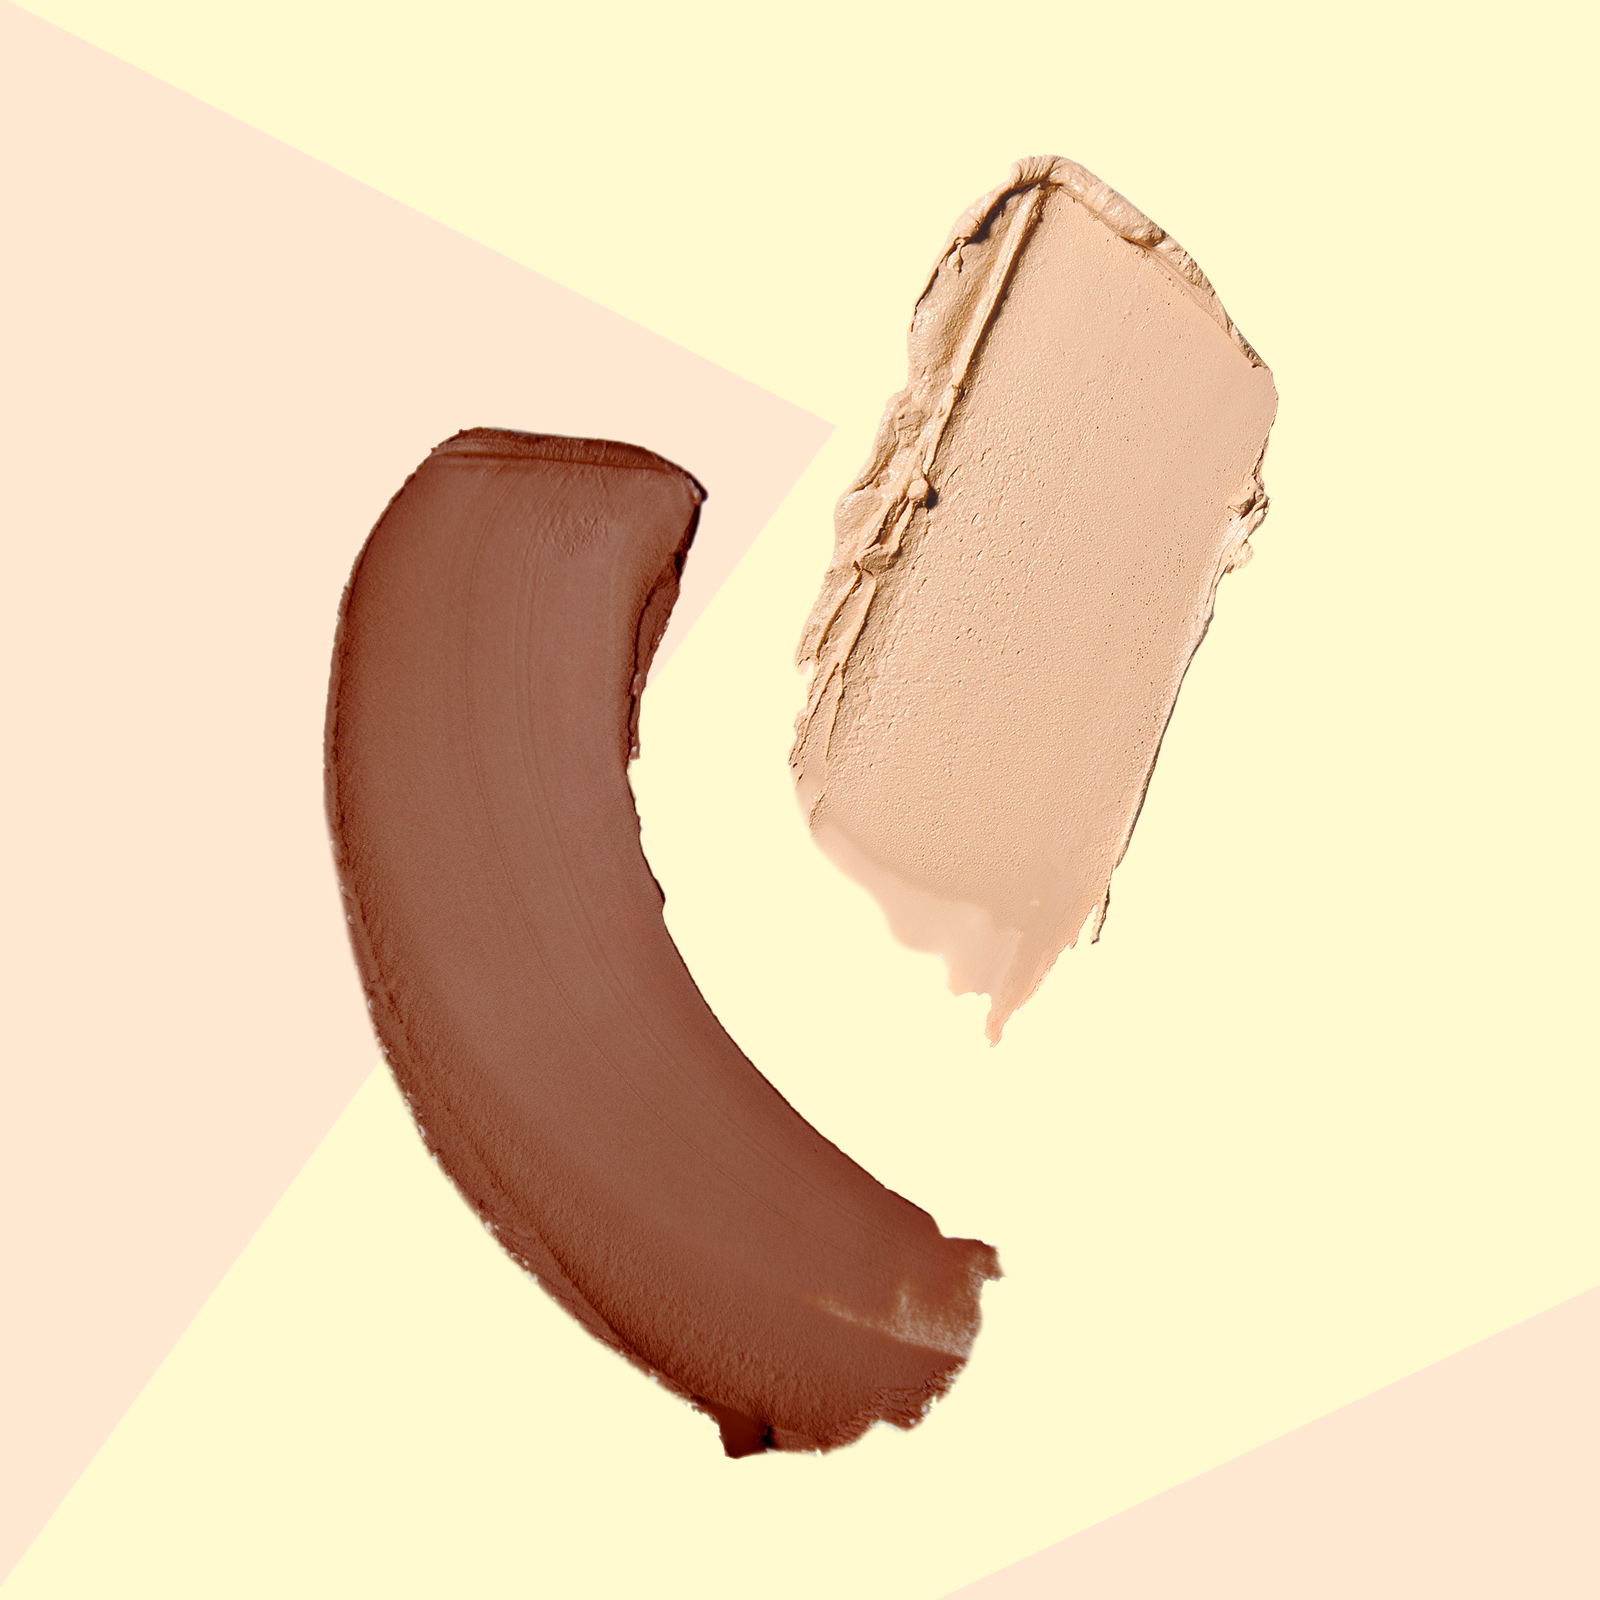 Cystic Acne Concealers